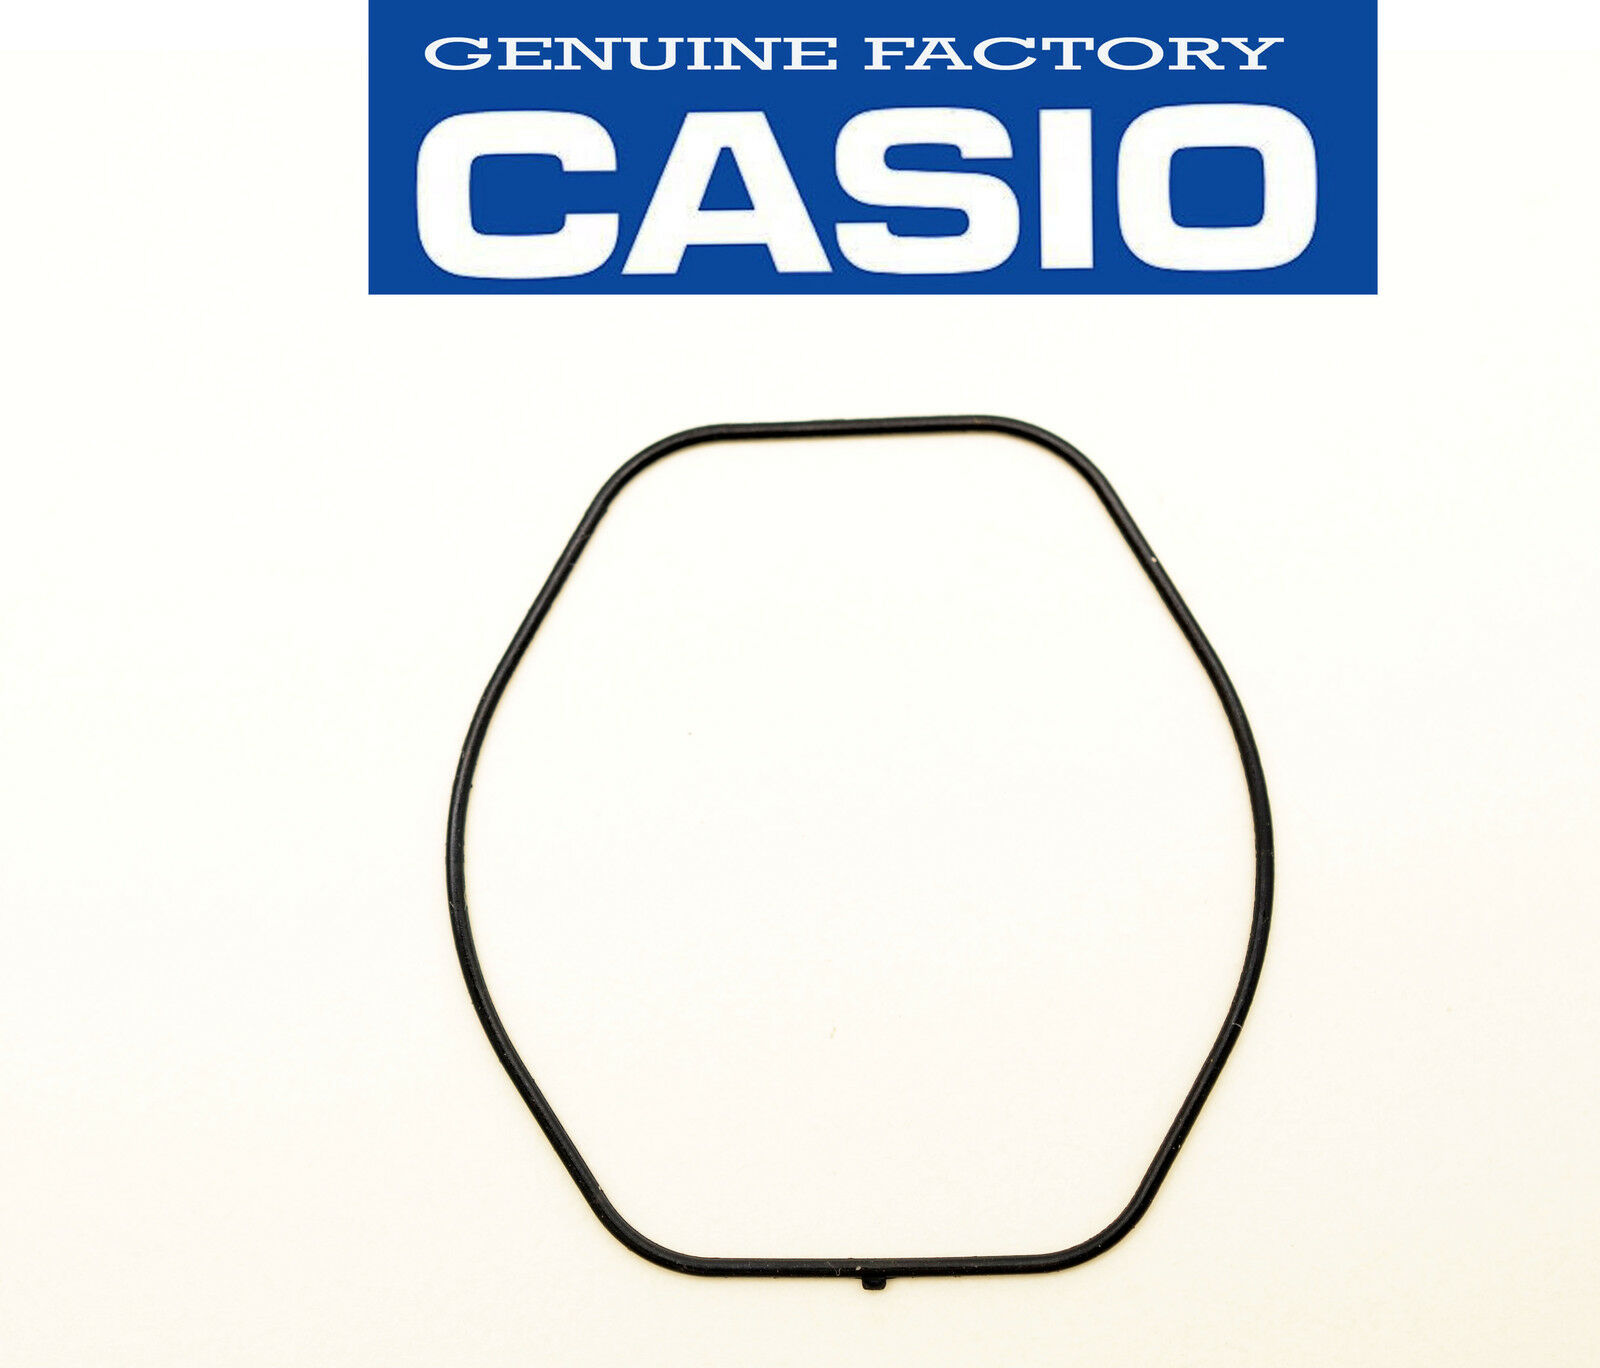 Primary image for Casio WATCH PART GASKET CASE BACK O-RING G-2210  G-2600  GL-121  GT000  SPF-60